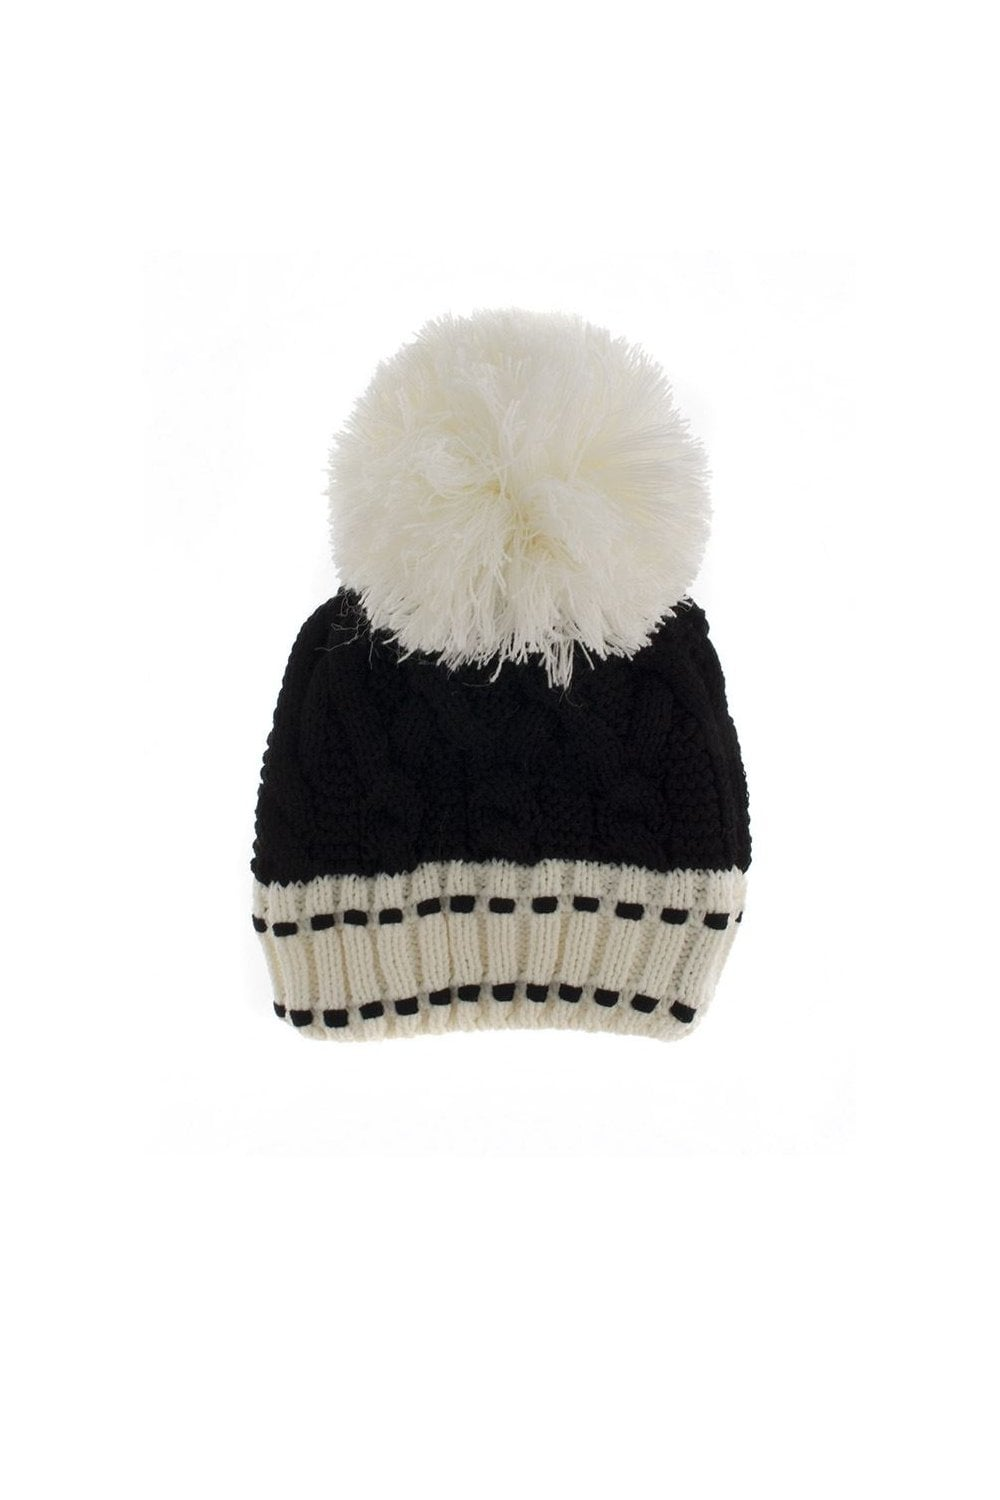 c522931cbfb95 Dents Womens Chunky Cable Knit Hat - Accessories from Potters of ...